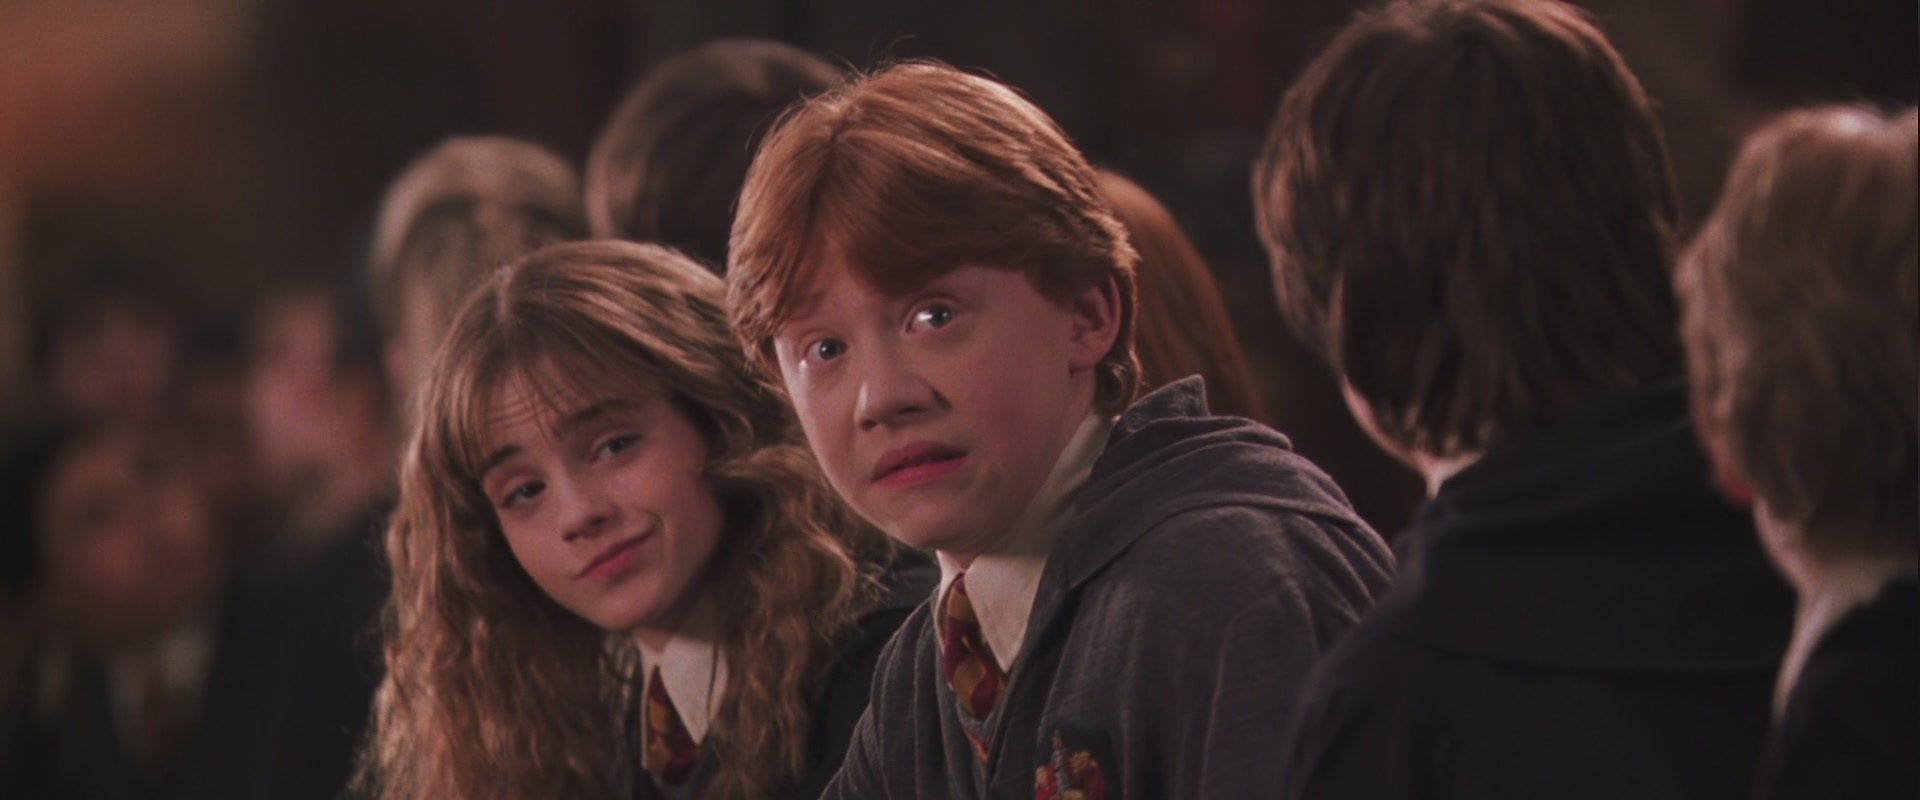 the summary of harry potter and the chamber of secrets Harry potter and the chamber of secrets follows harry'ssecond year at hogwarts this book introduces the idea of bloodpurity, one of the main plots of the series.